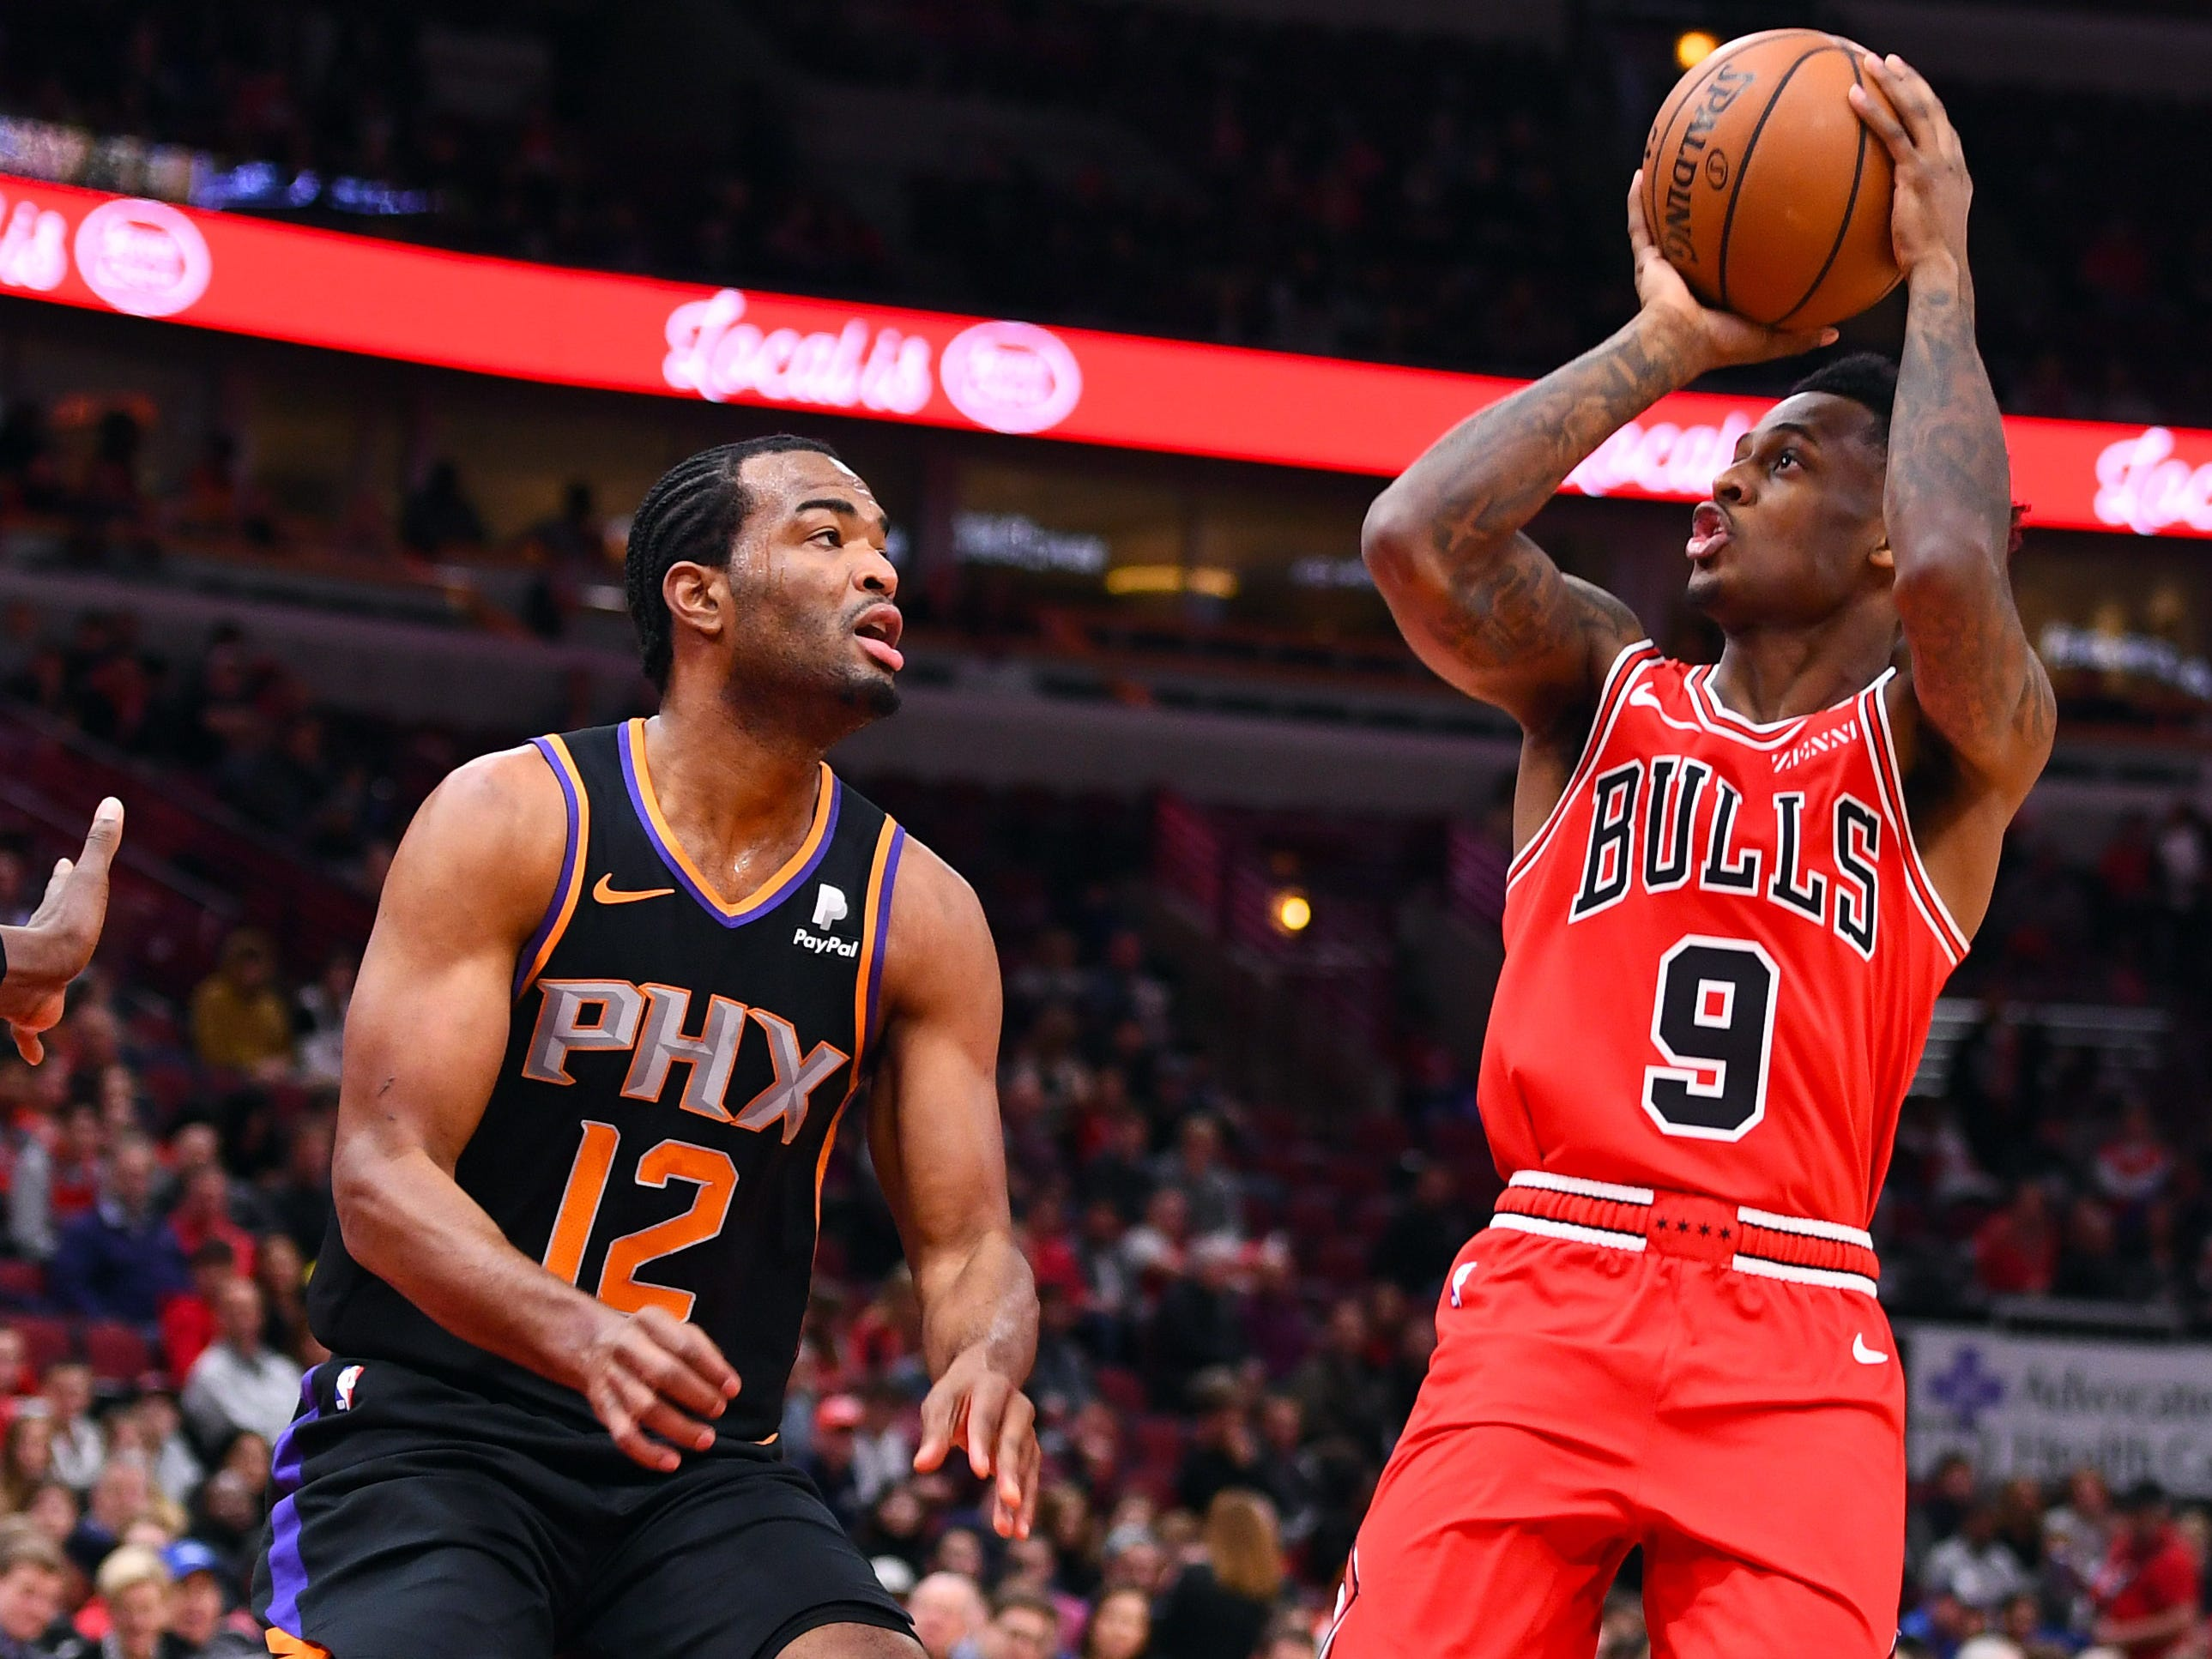 Bulls guard Antonio Blakeney (9) shoots the ball against Suns forward TJ Warren (12) during the first half of a game Wednesday at the United Center.